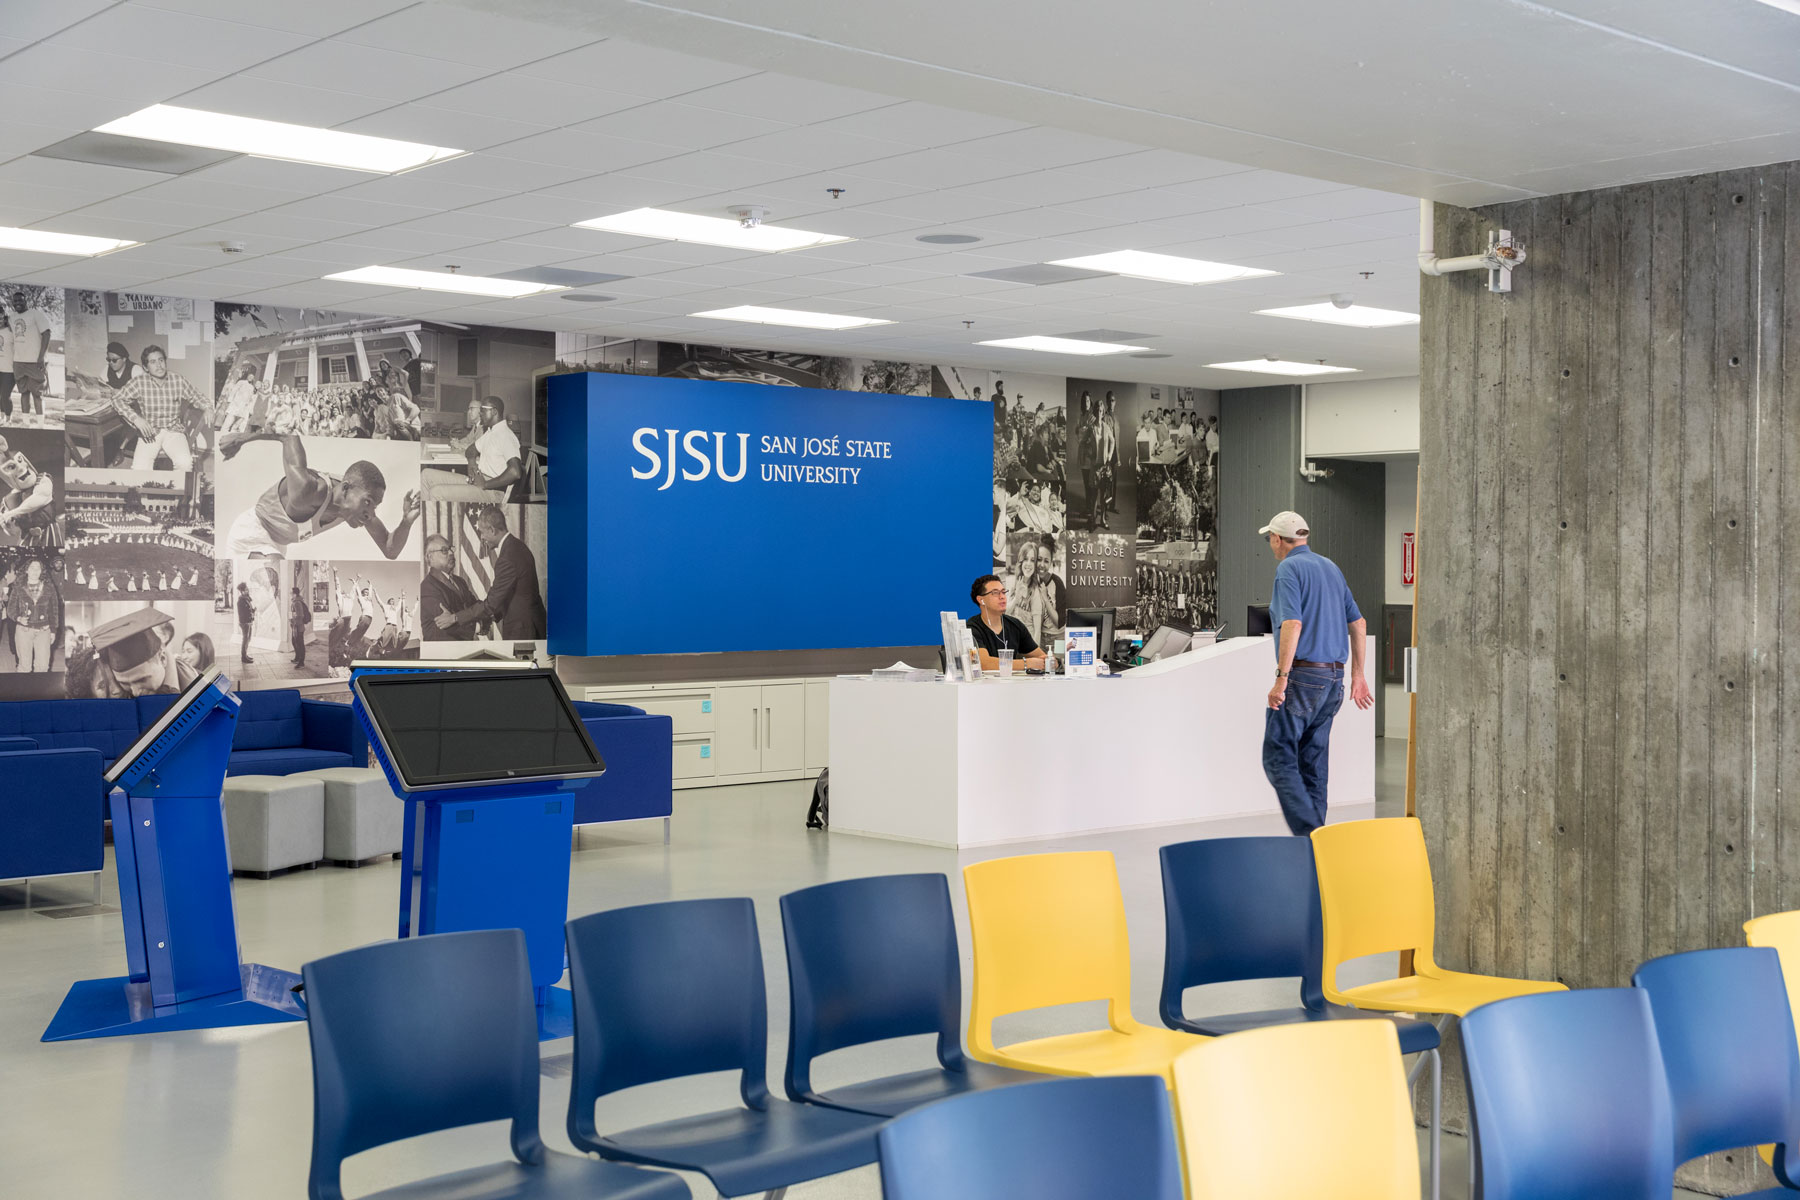 SJSU Welcome Center